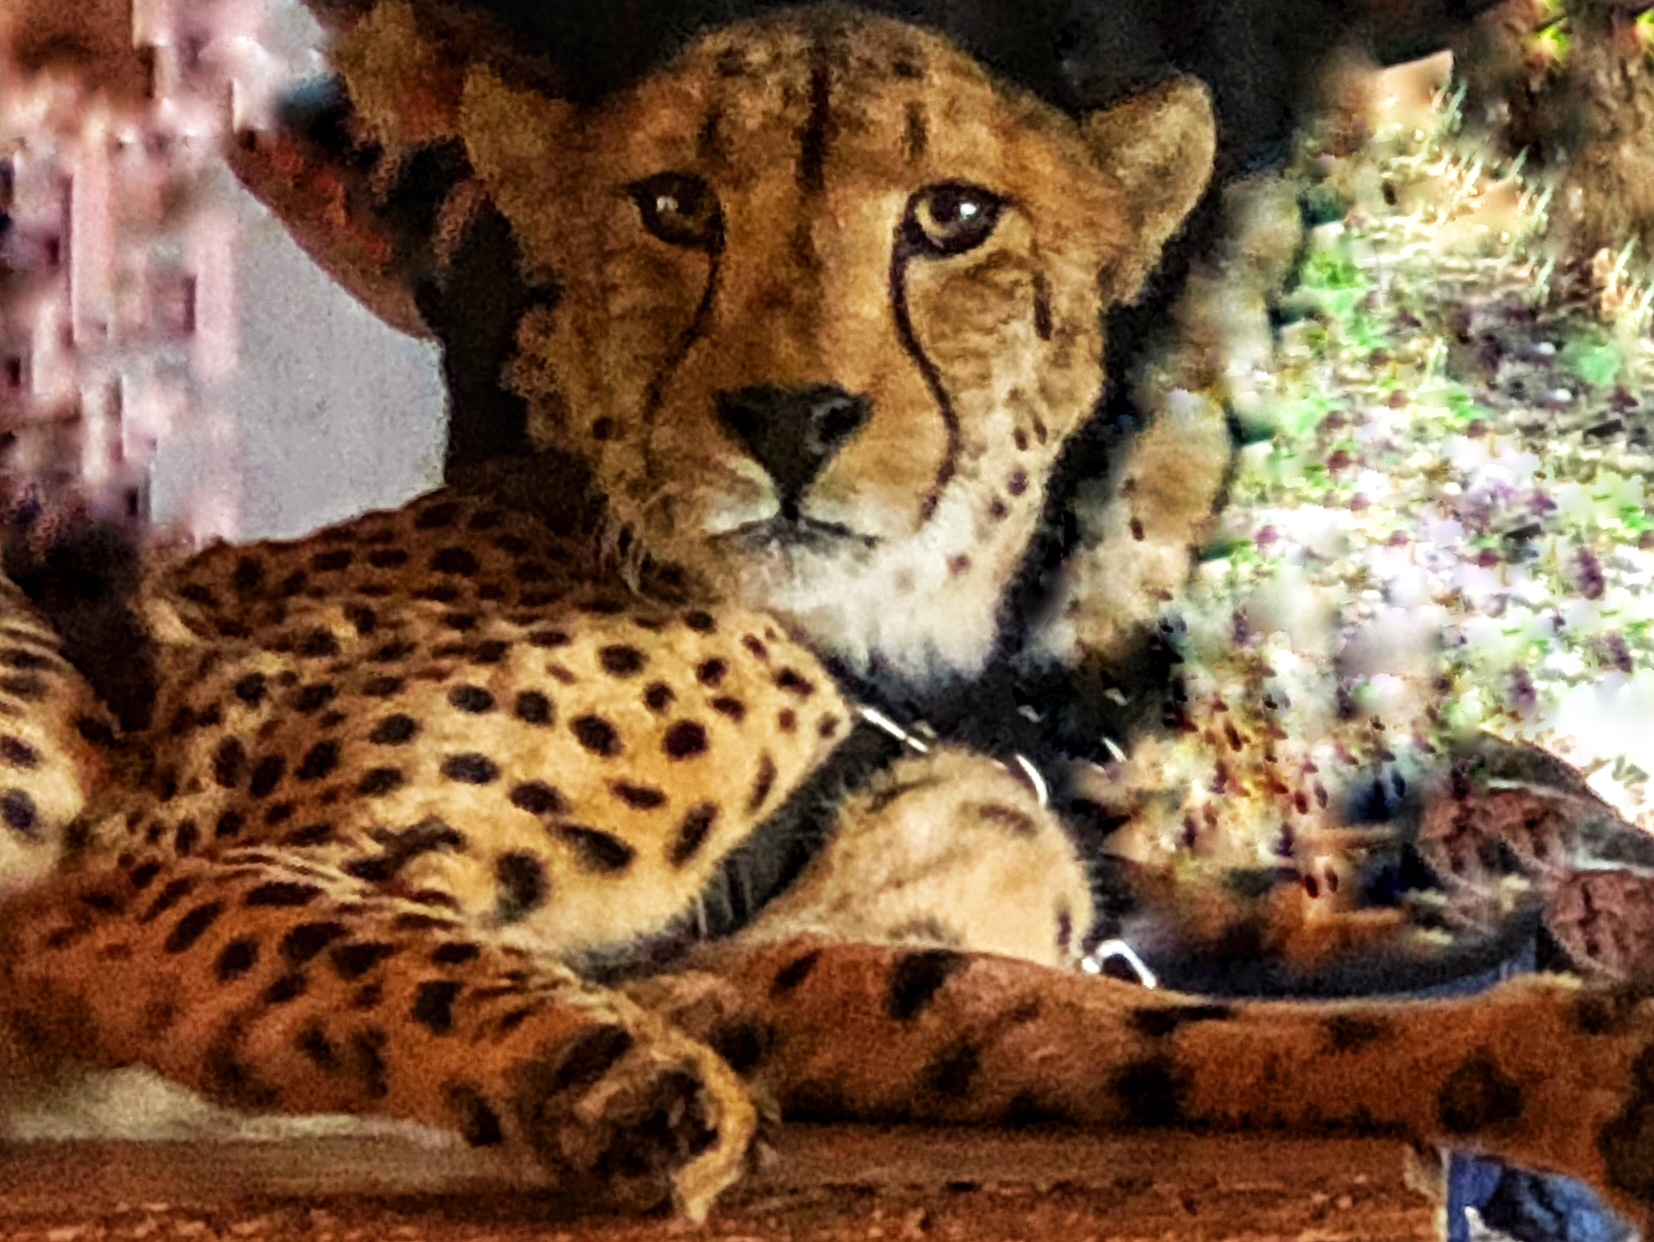 Yeats, the Ambassador Cheetah from the De Wildt Cheetah and Wildlife Centre, who goes to Schools to increase awareness of Cheetahs